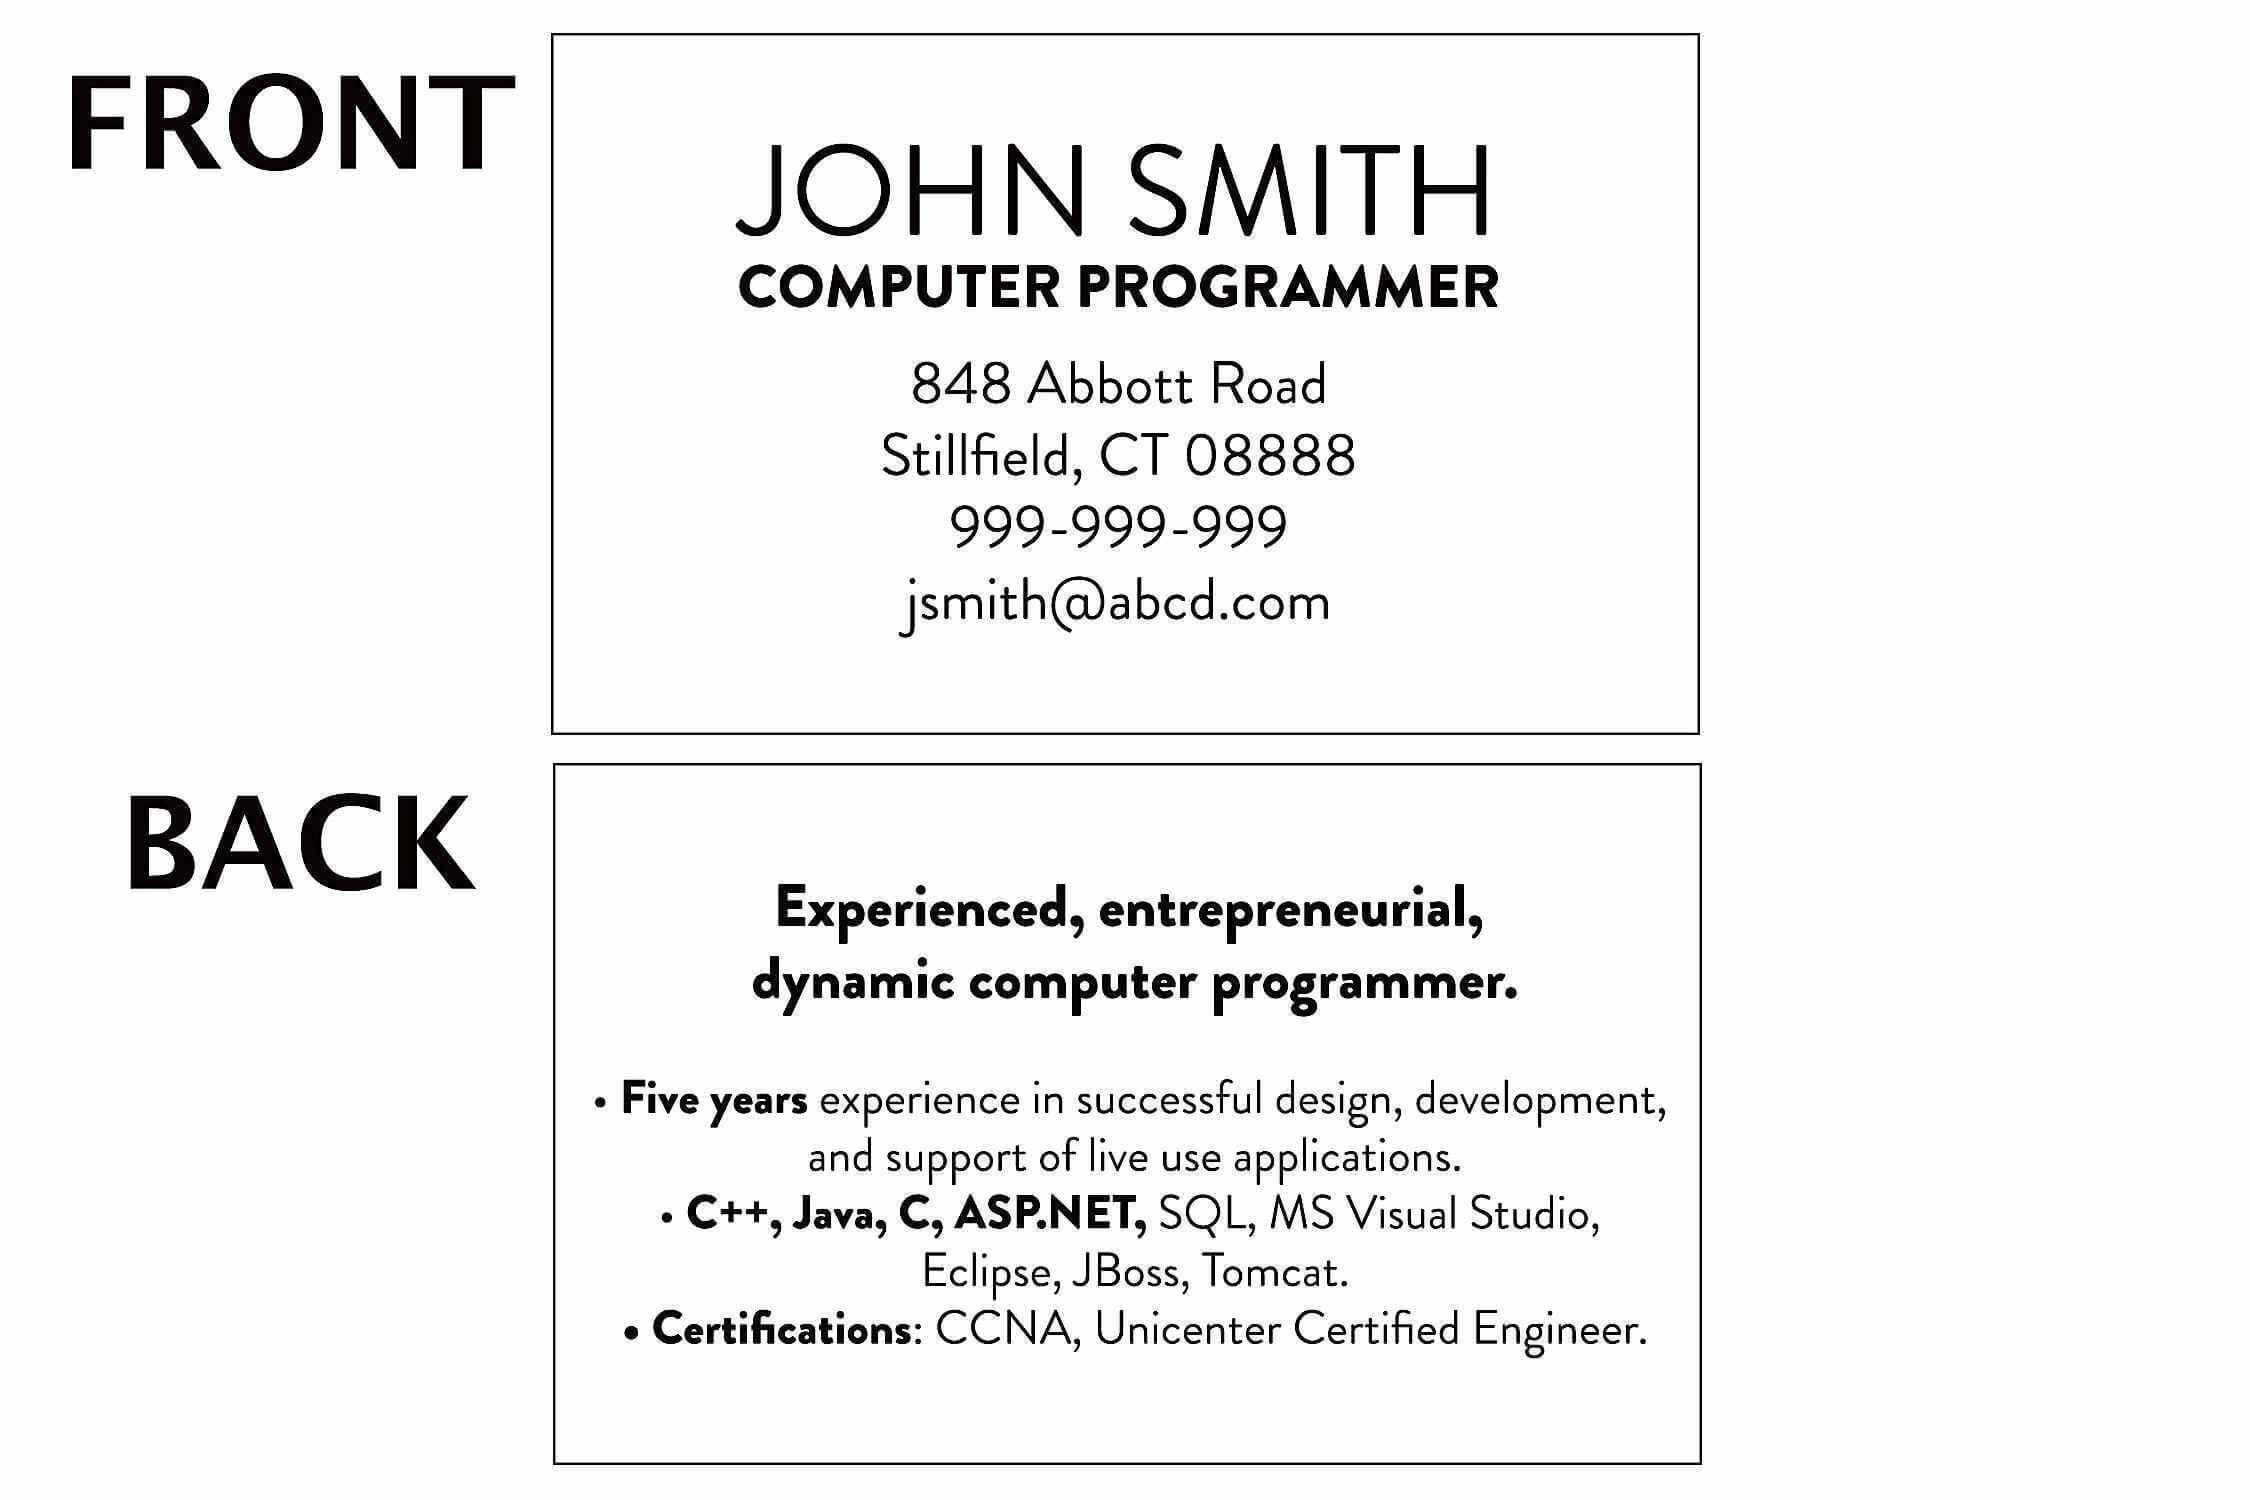 003 Student Business Card Template College Unique Cards Regarding Student Business Card Template